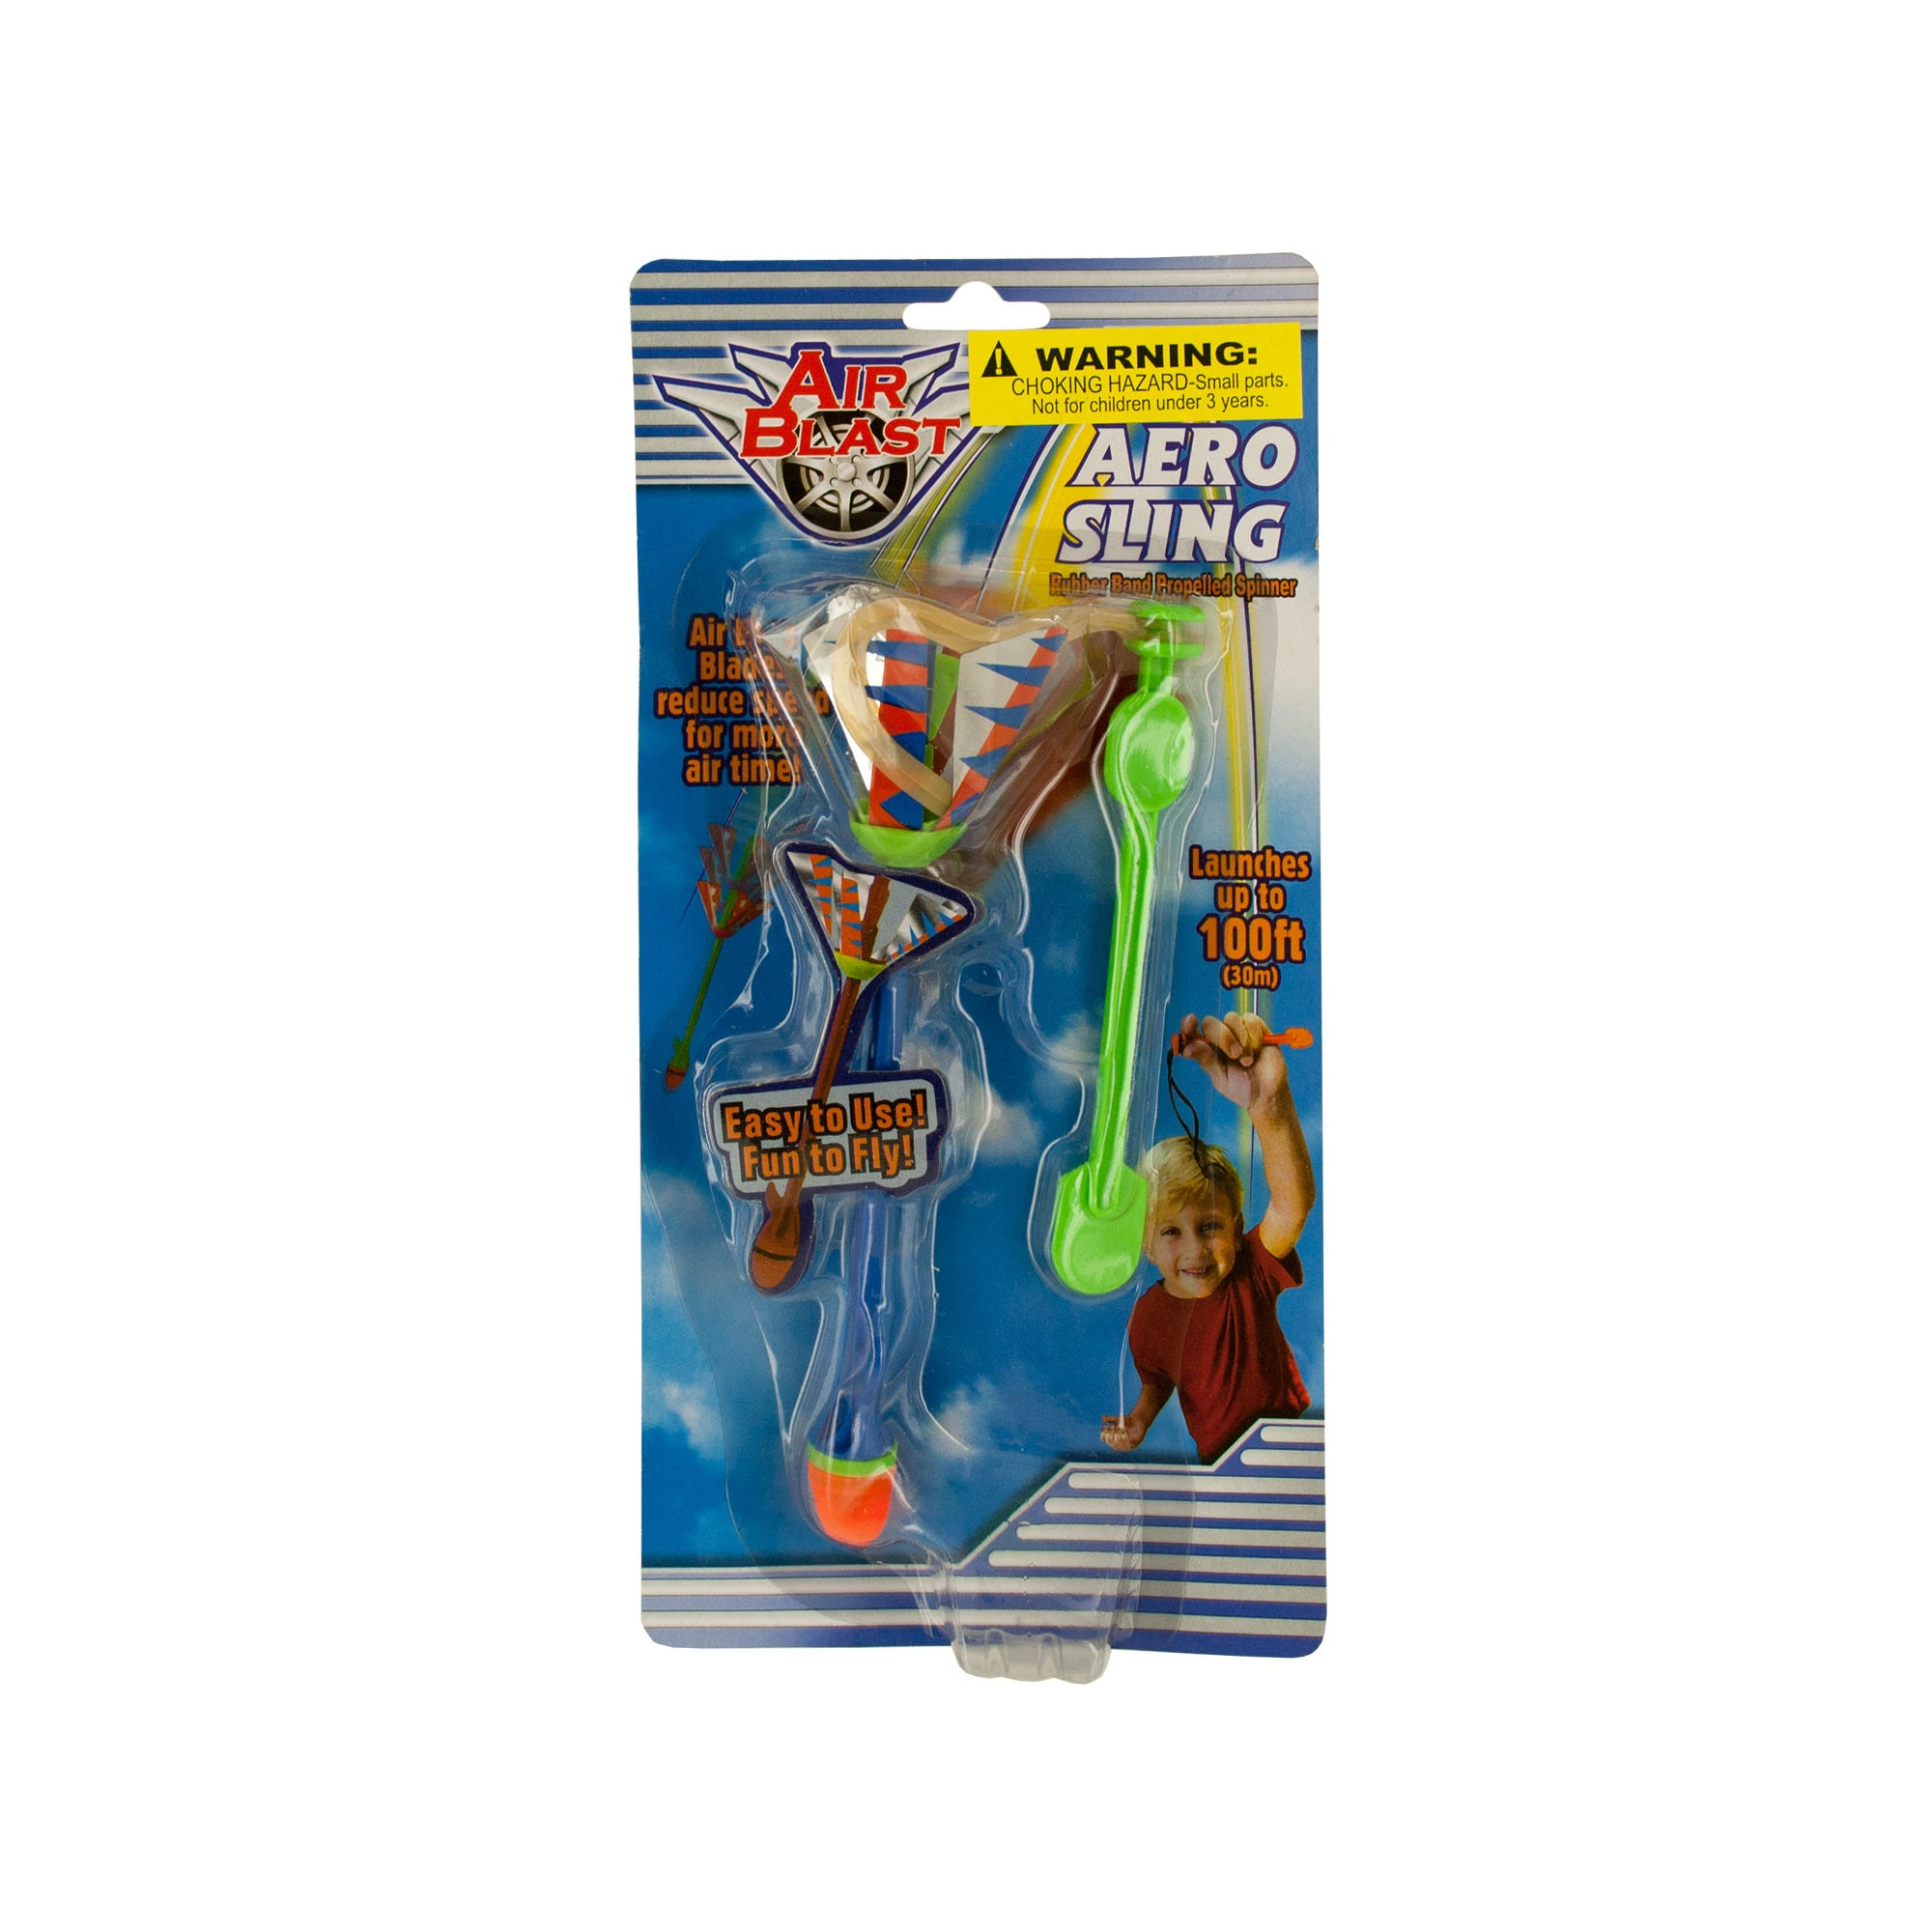 Aero Sling RUBBER BAND Spinner Toy- Qty 24